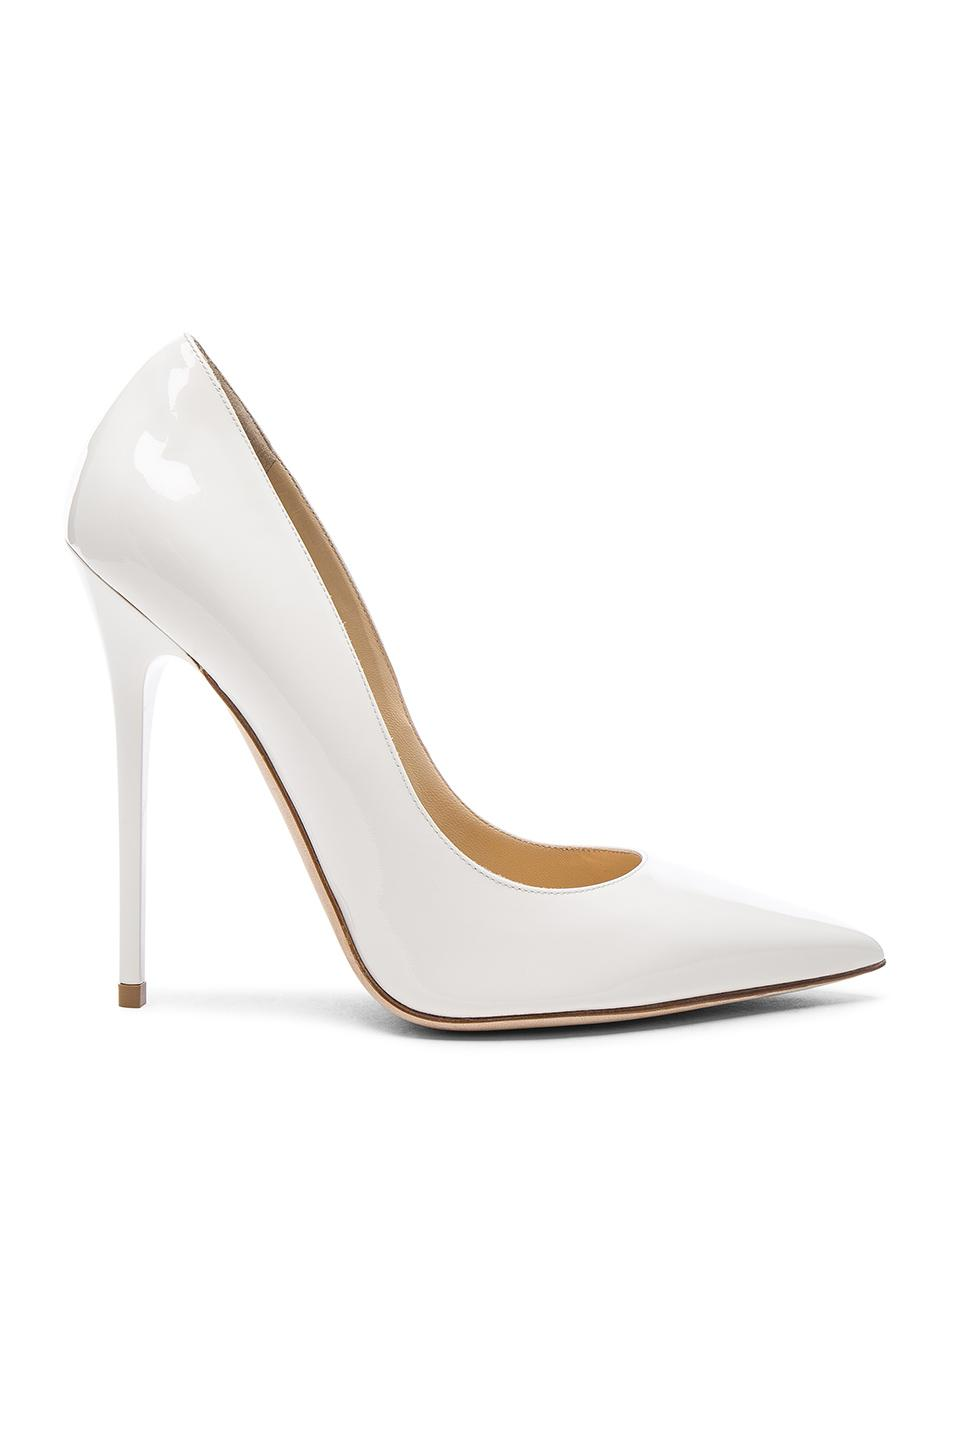 80a044a965aa Jimmy choo Patent Leather Anouk Pumps in White